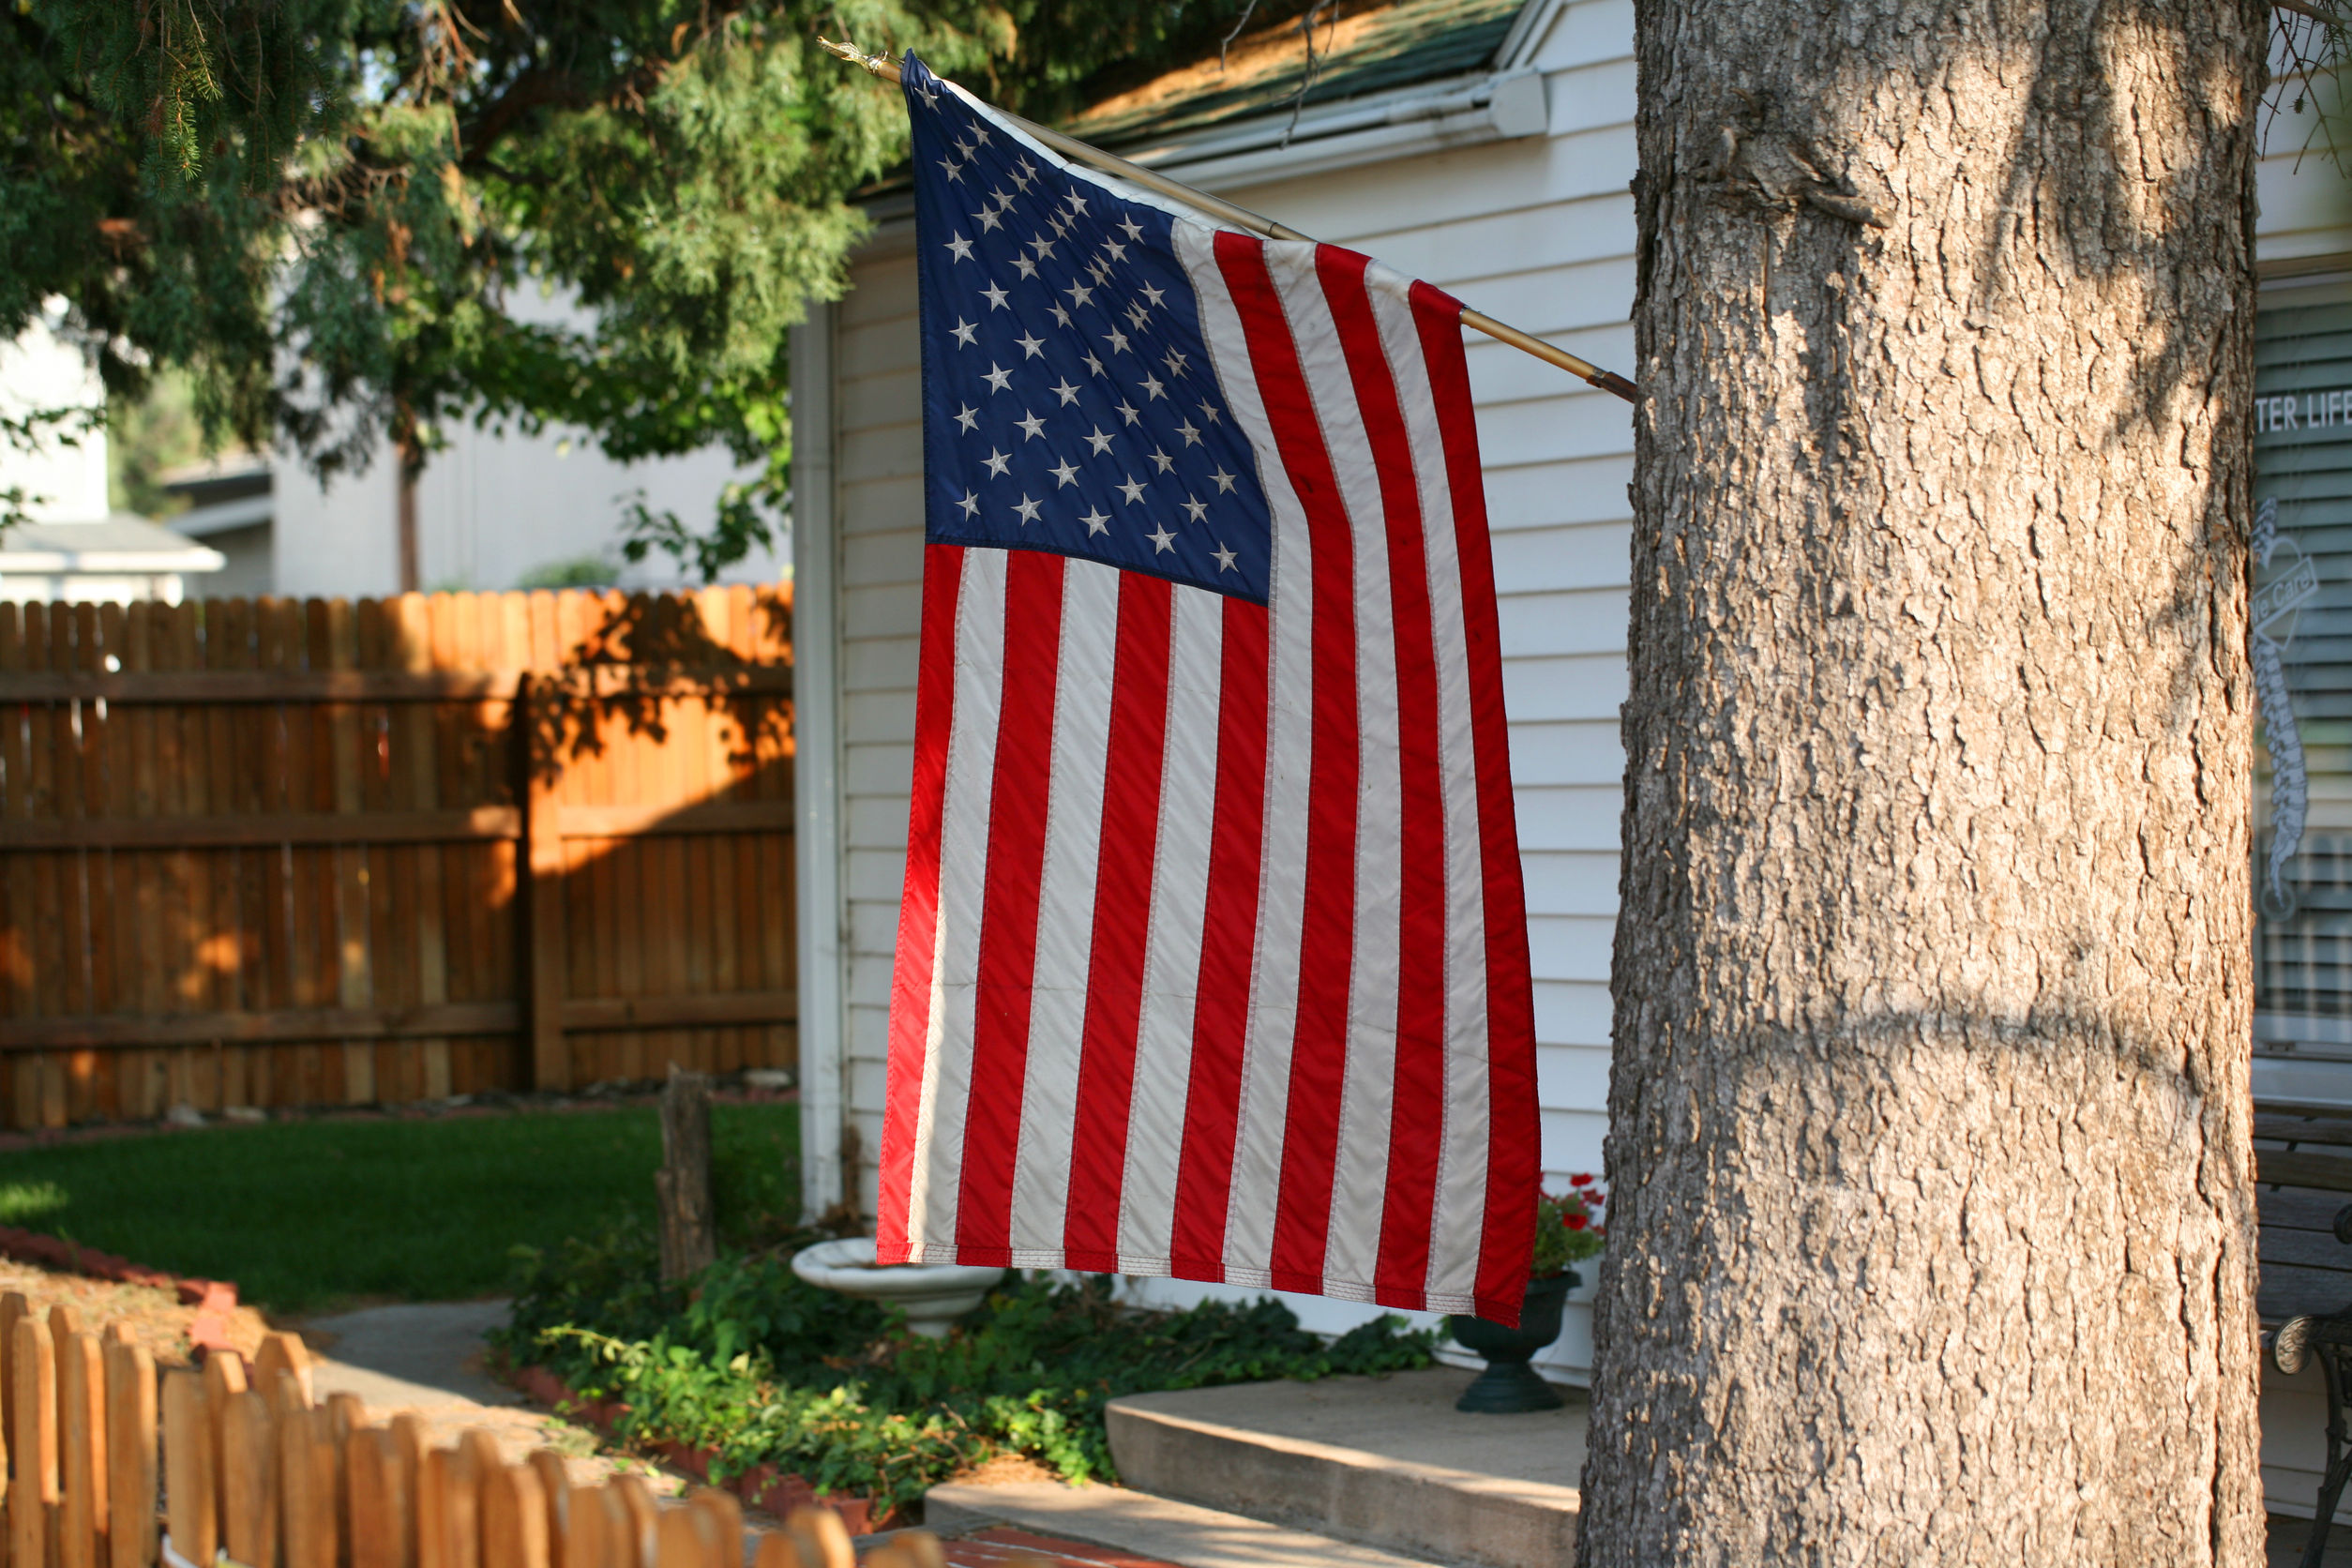 Second VA Loan Requirements, homepromise, VA Loan Refinance, Should I Buy a House While in The Military